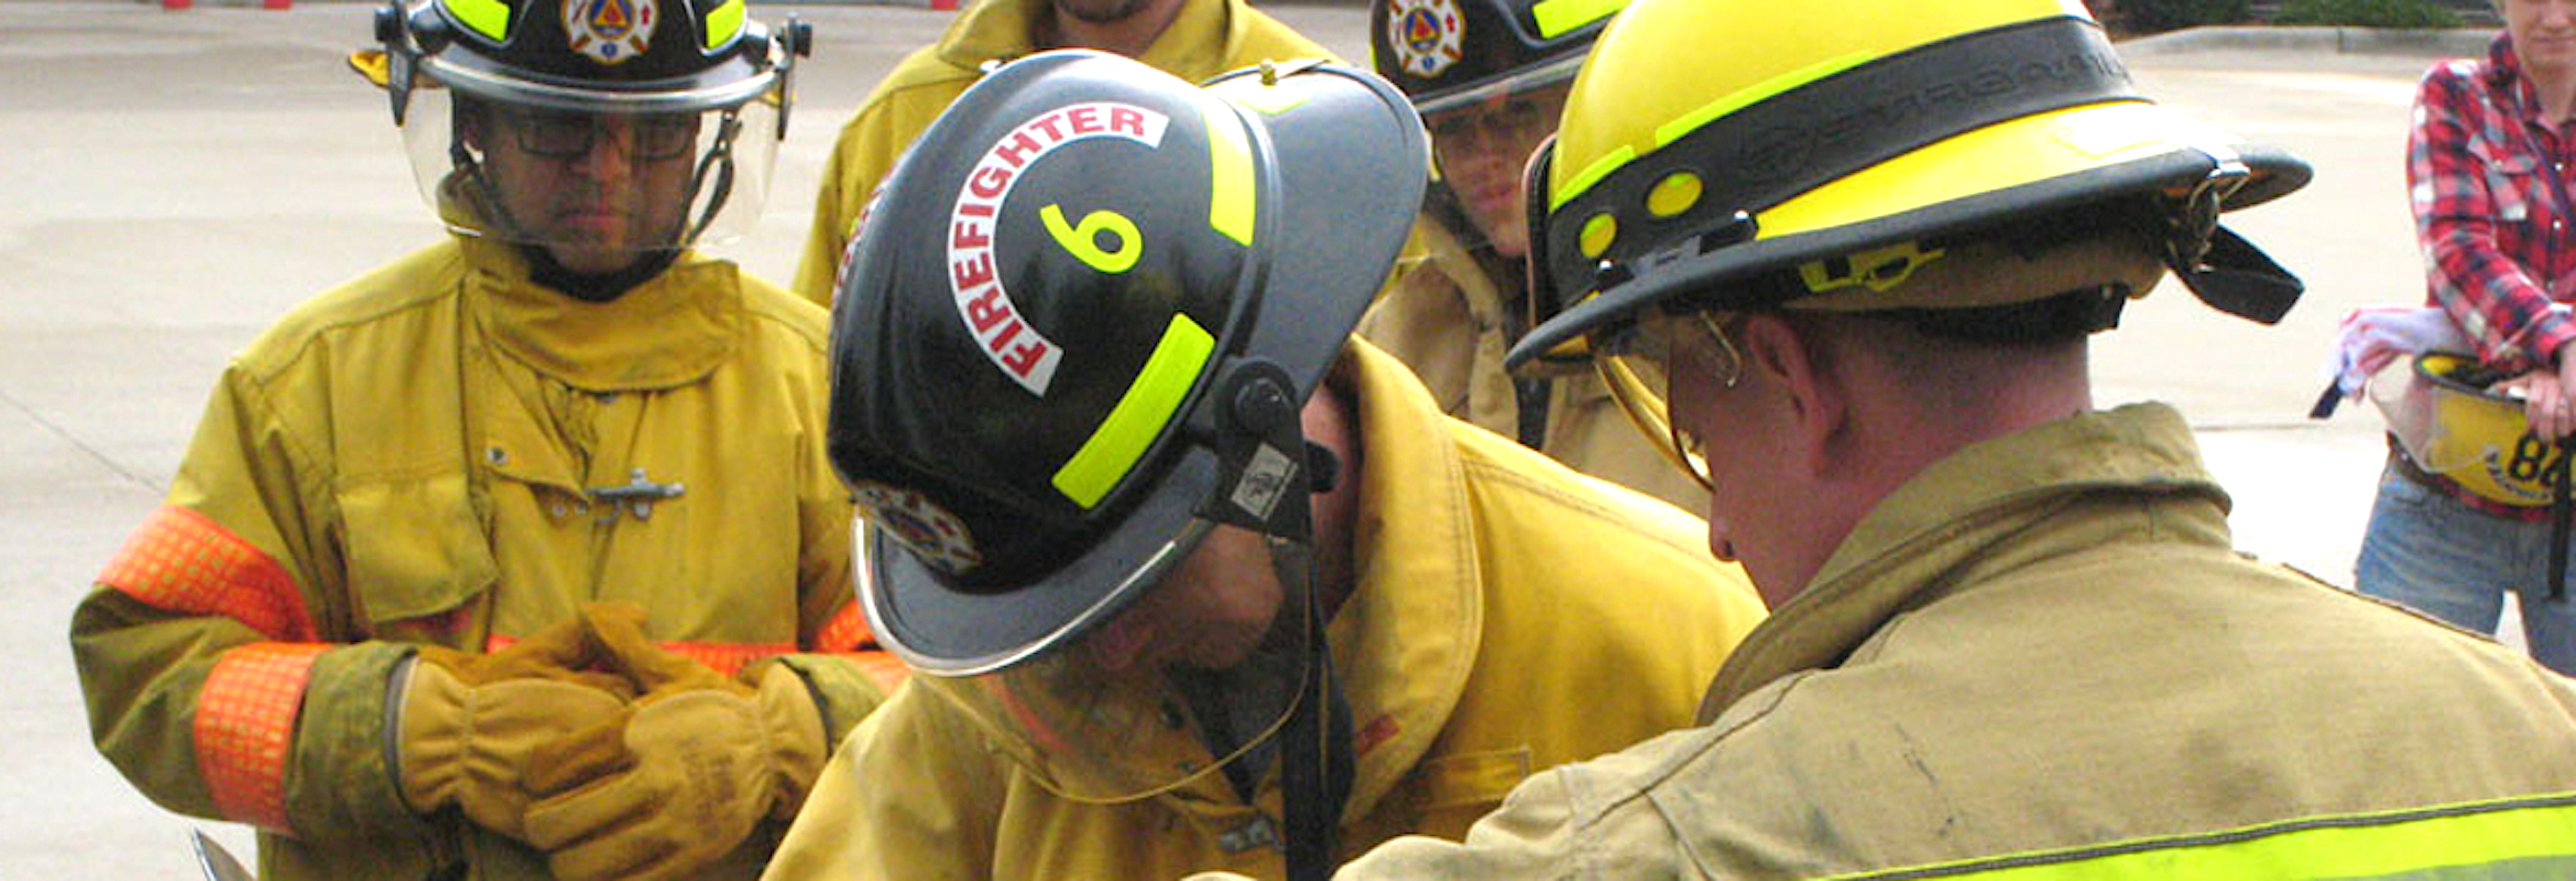 Image of Fire Fighters